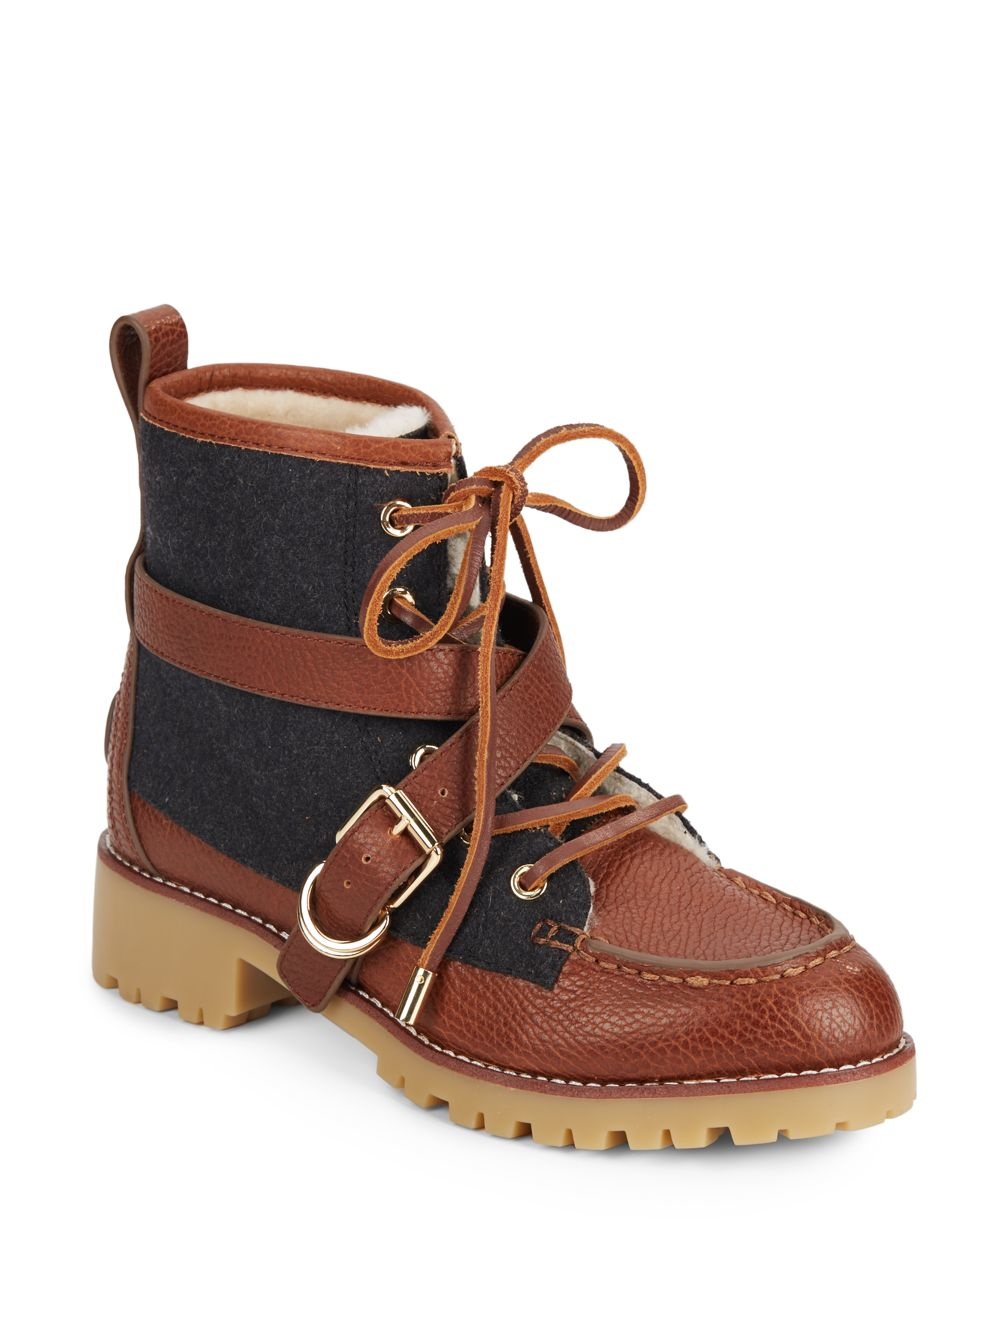 7935bdefe543 Lyst - Tory Burch Samson Mixed-media Ankle Boots in Brown